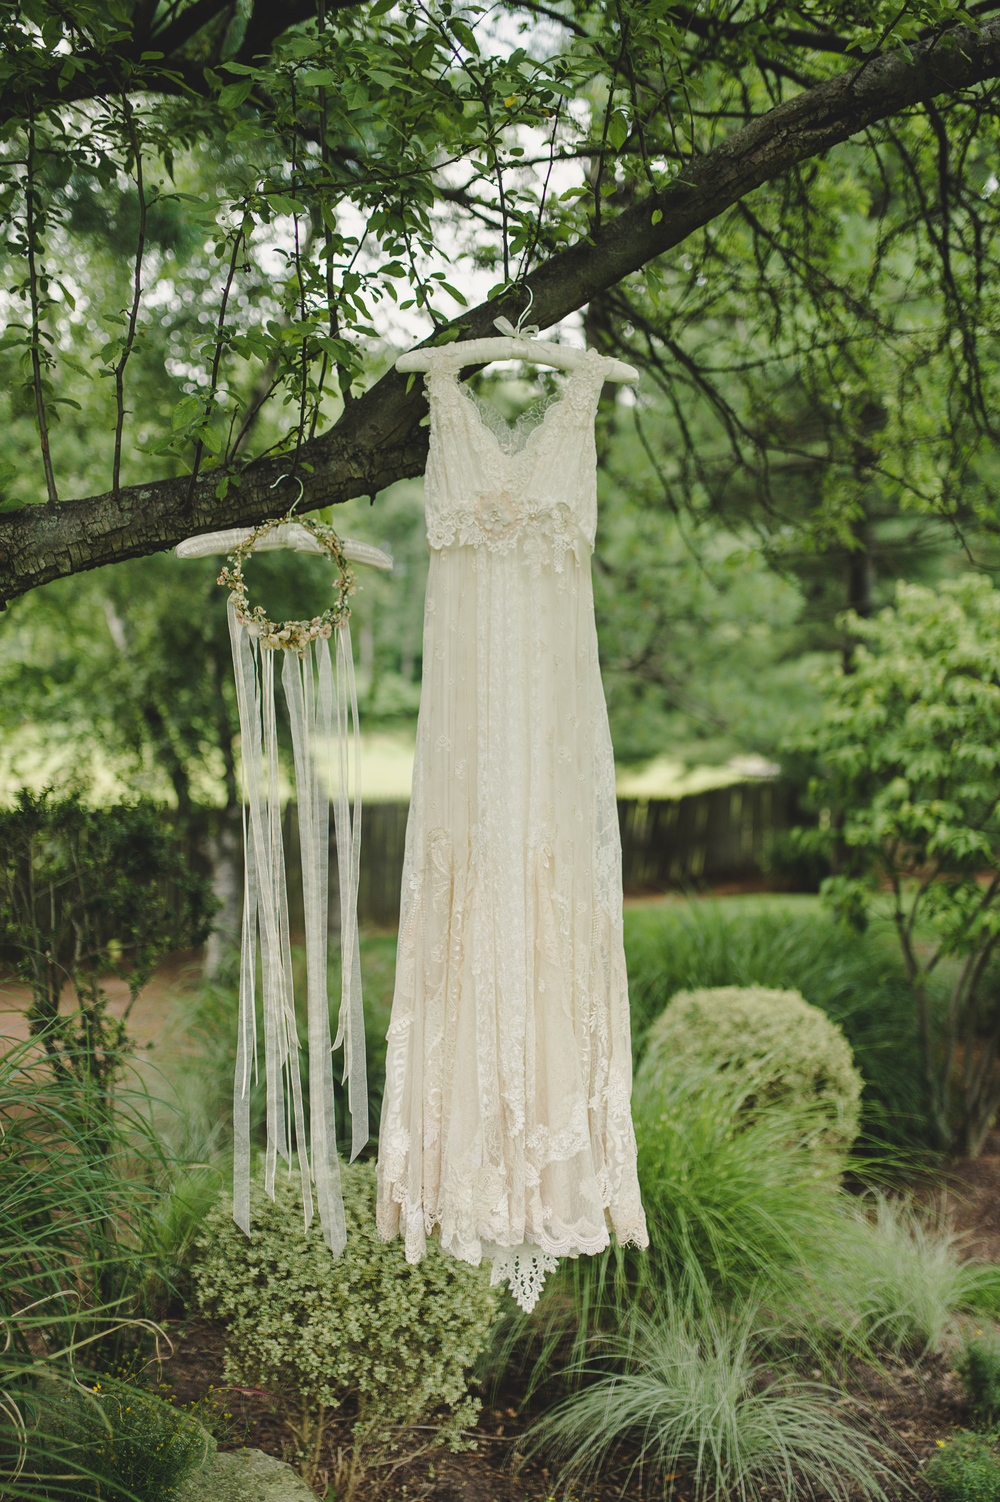 Time to Hang the Dress - Mayfair Farms West Orange, NJ